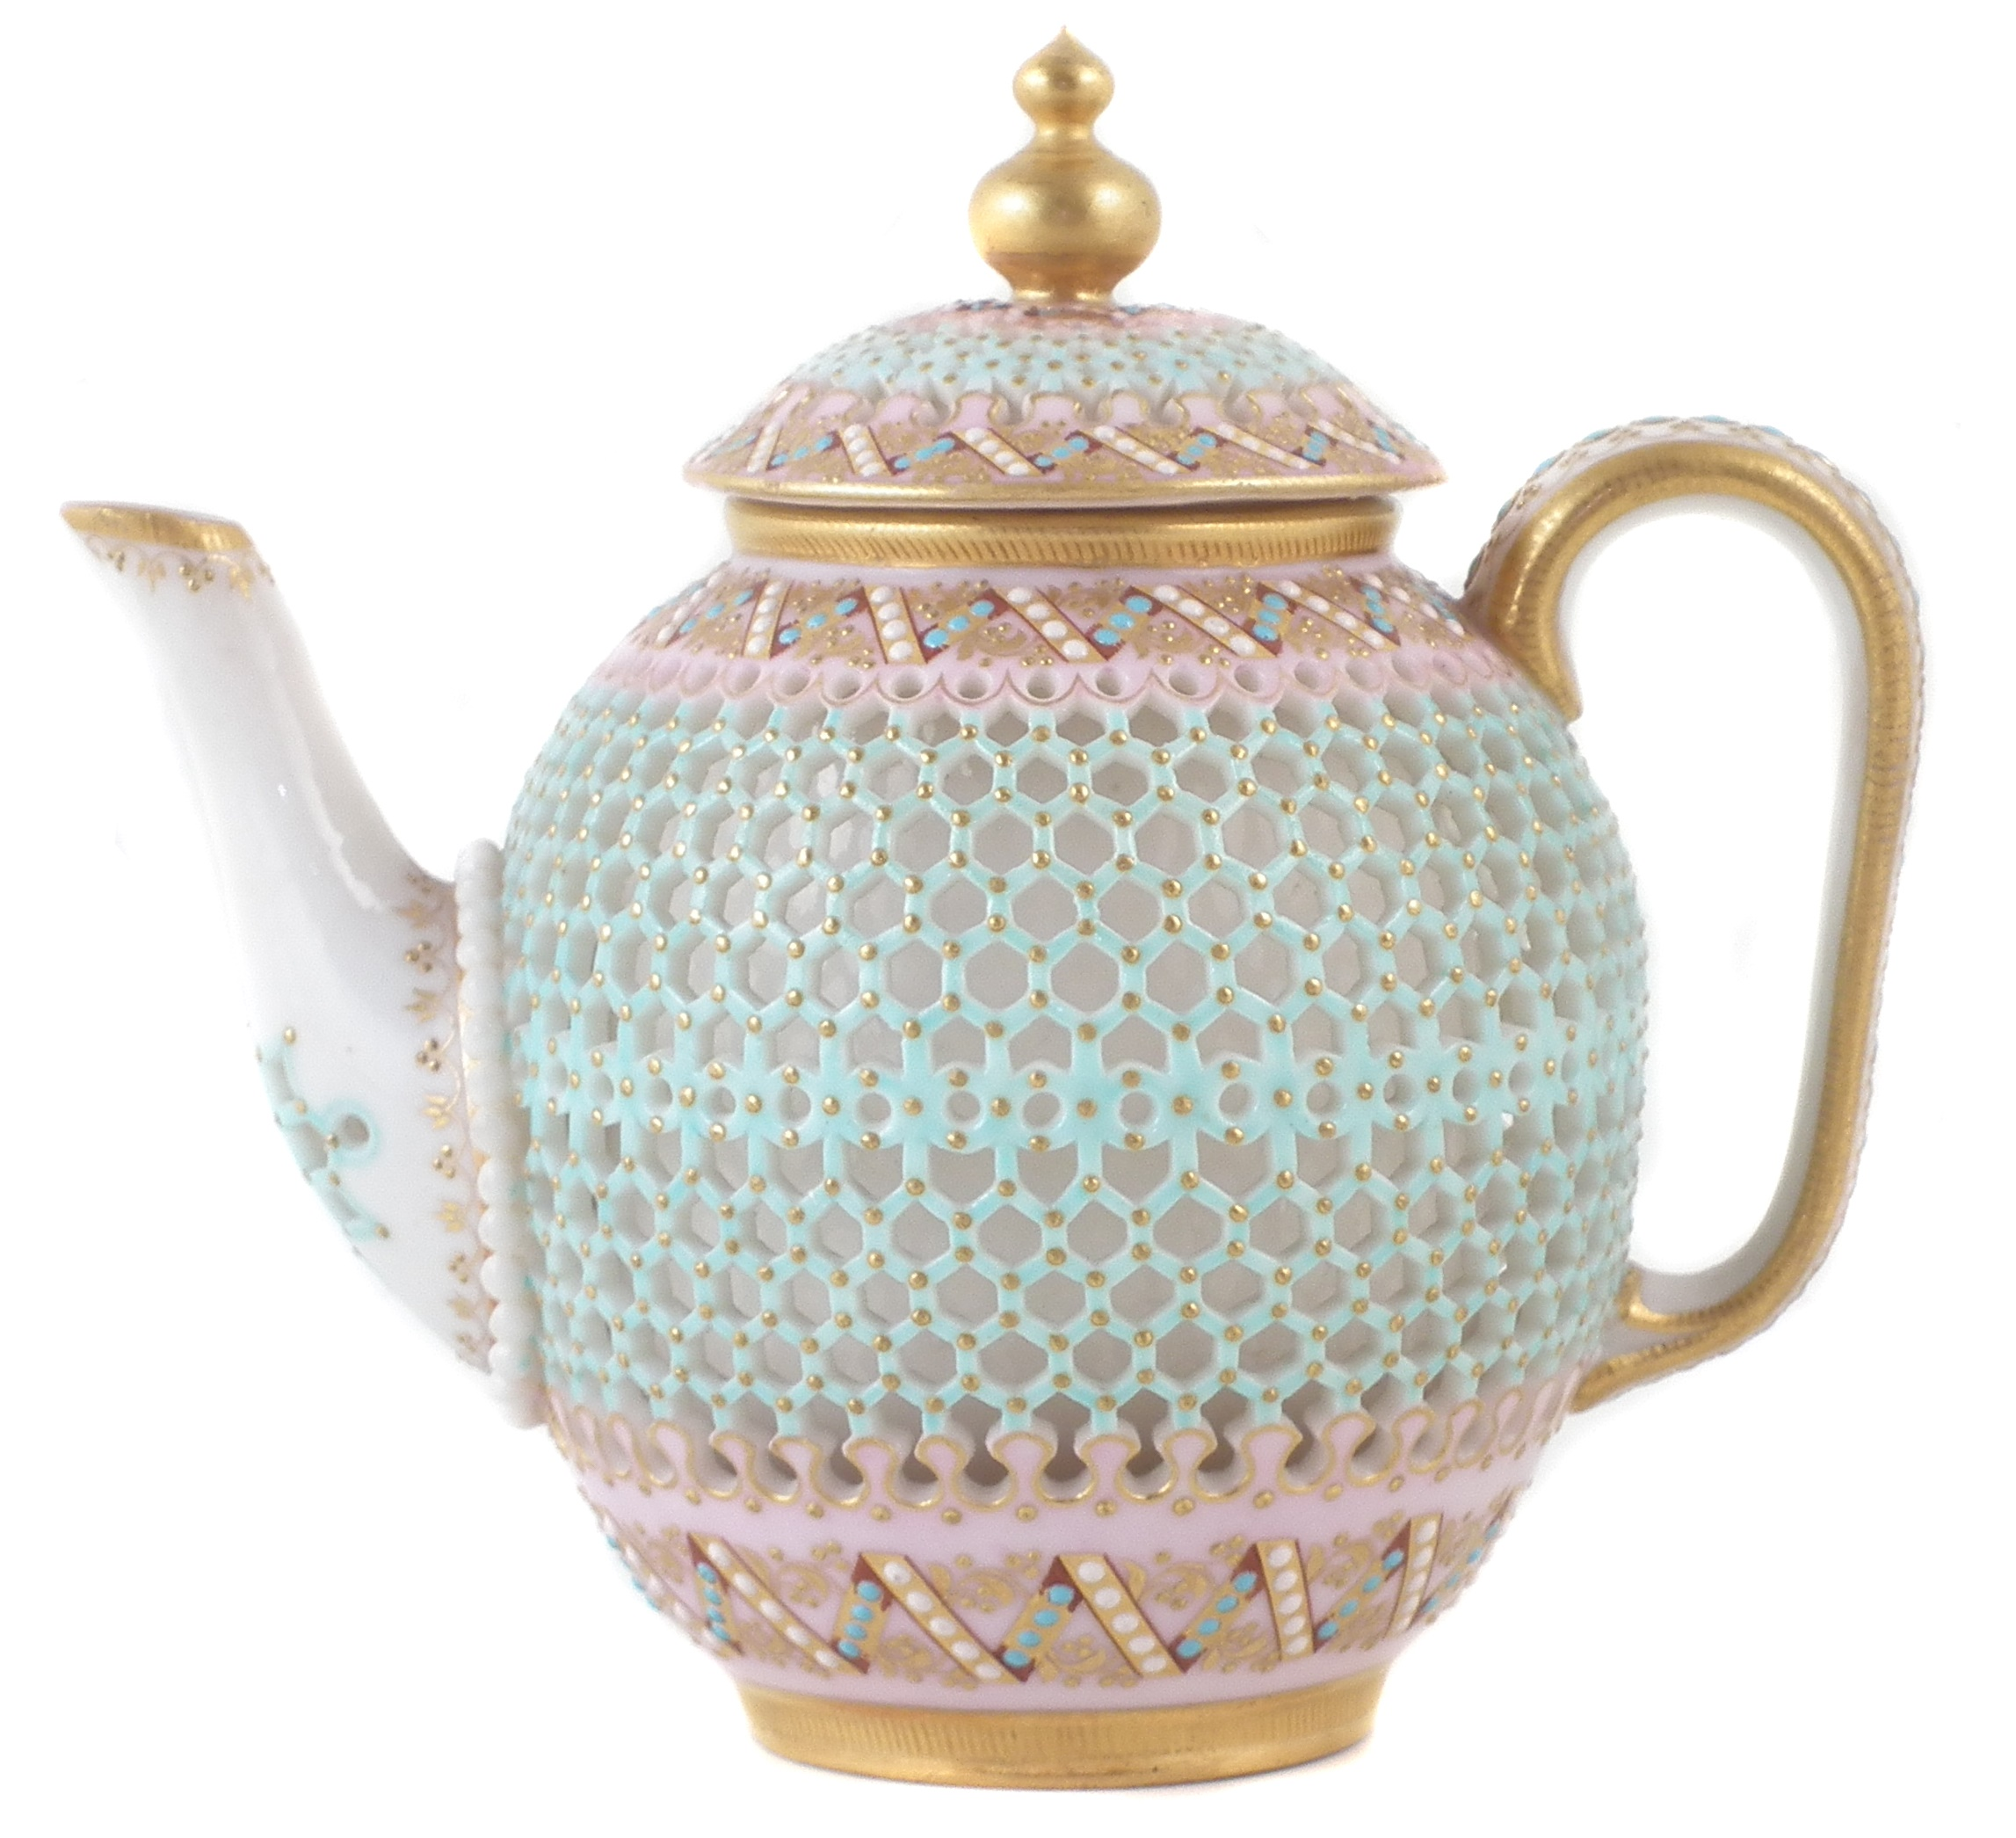 Royal Worcester reticulated teapot and cover by George Owen, the hexagonal cut body applied with turquoise, white and gilt jewels, late 19th century,12.5cm high